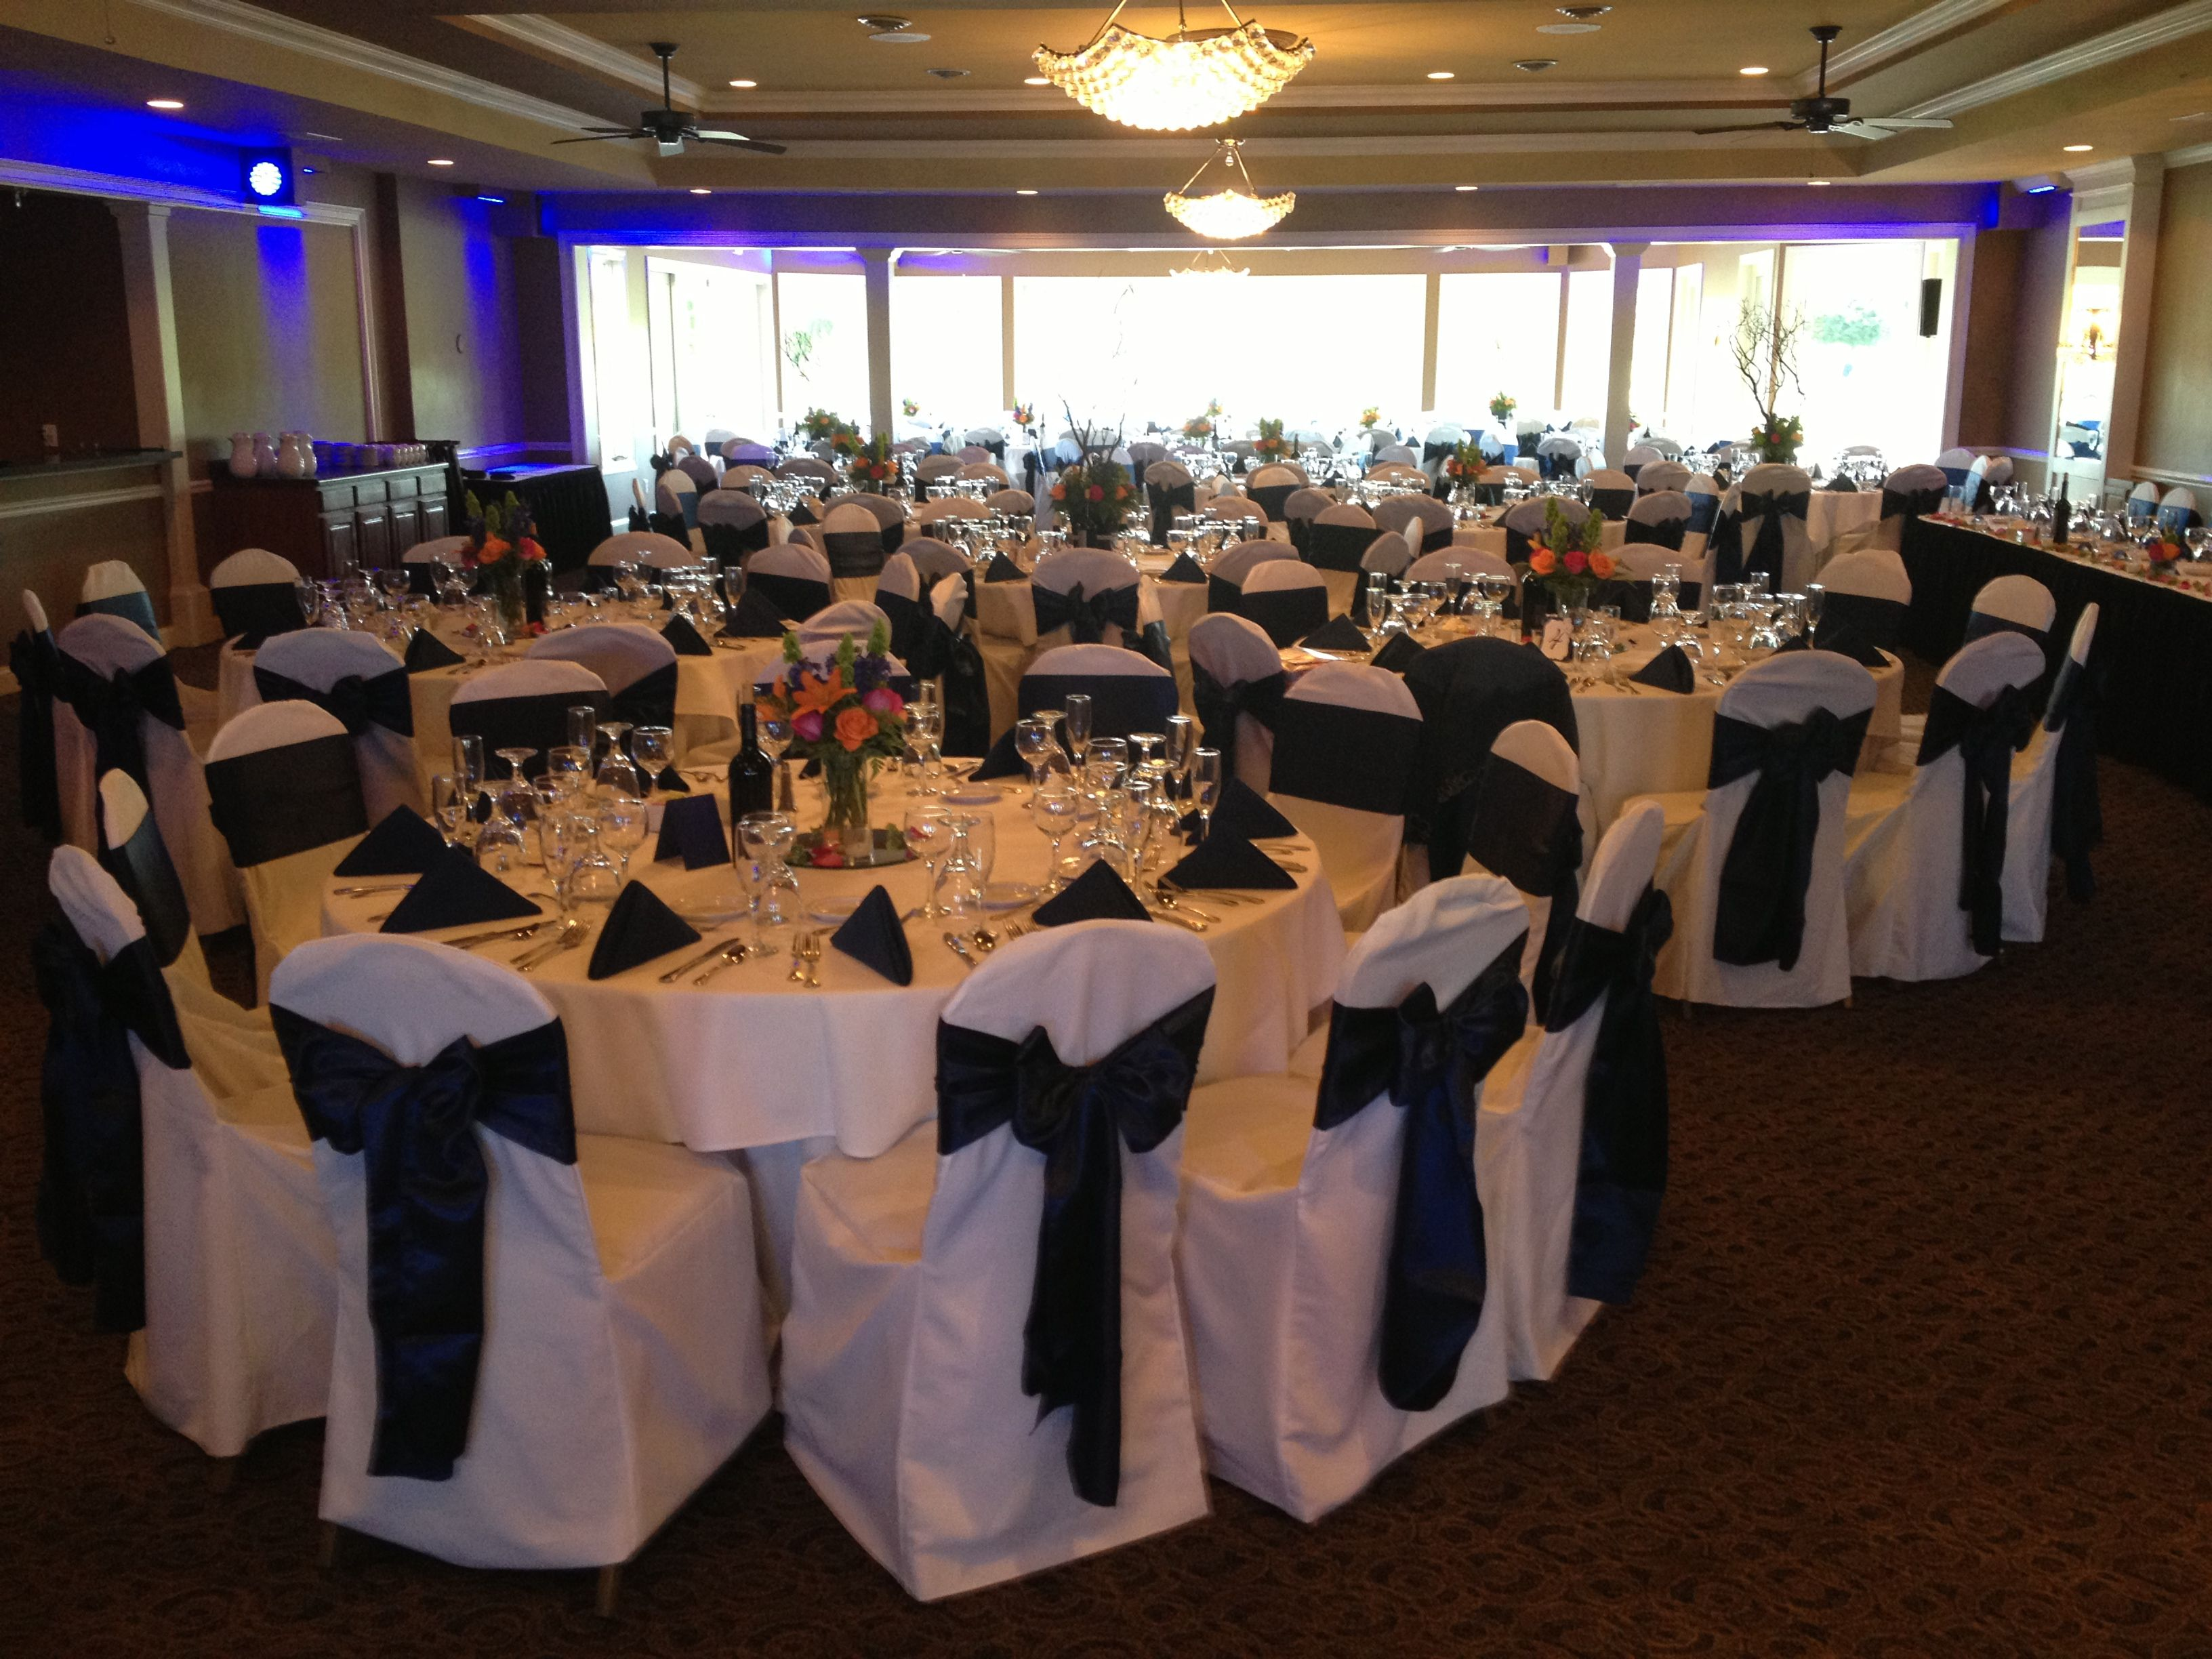 Wedding Navy Blue Satin Sash Tie On White Poly Chair Cover Northwest  Indiana Chair Cover Rental